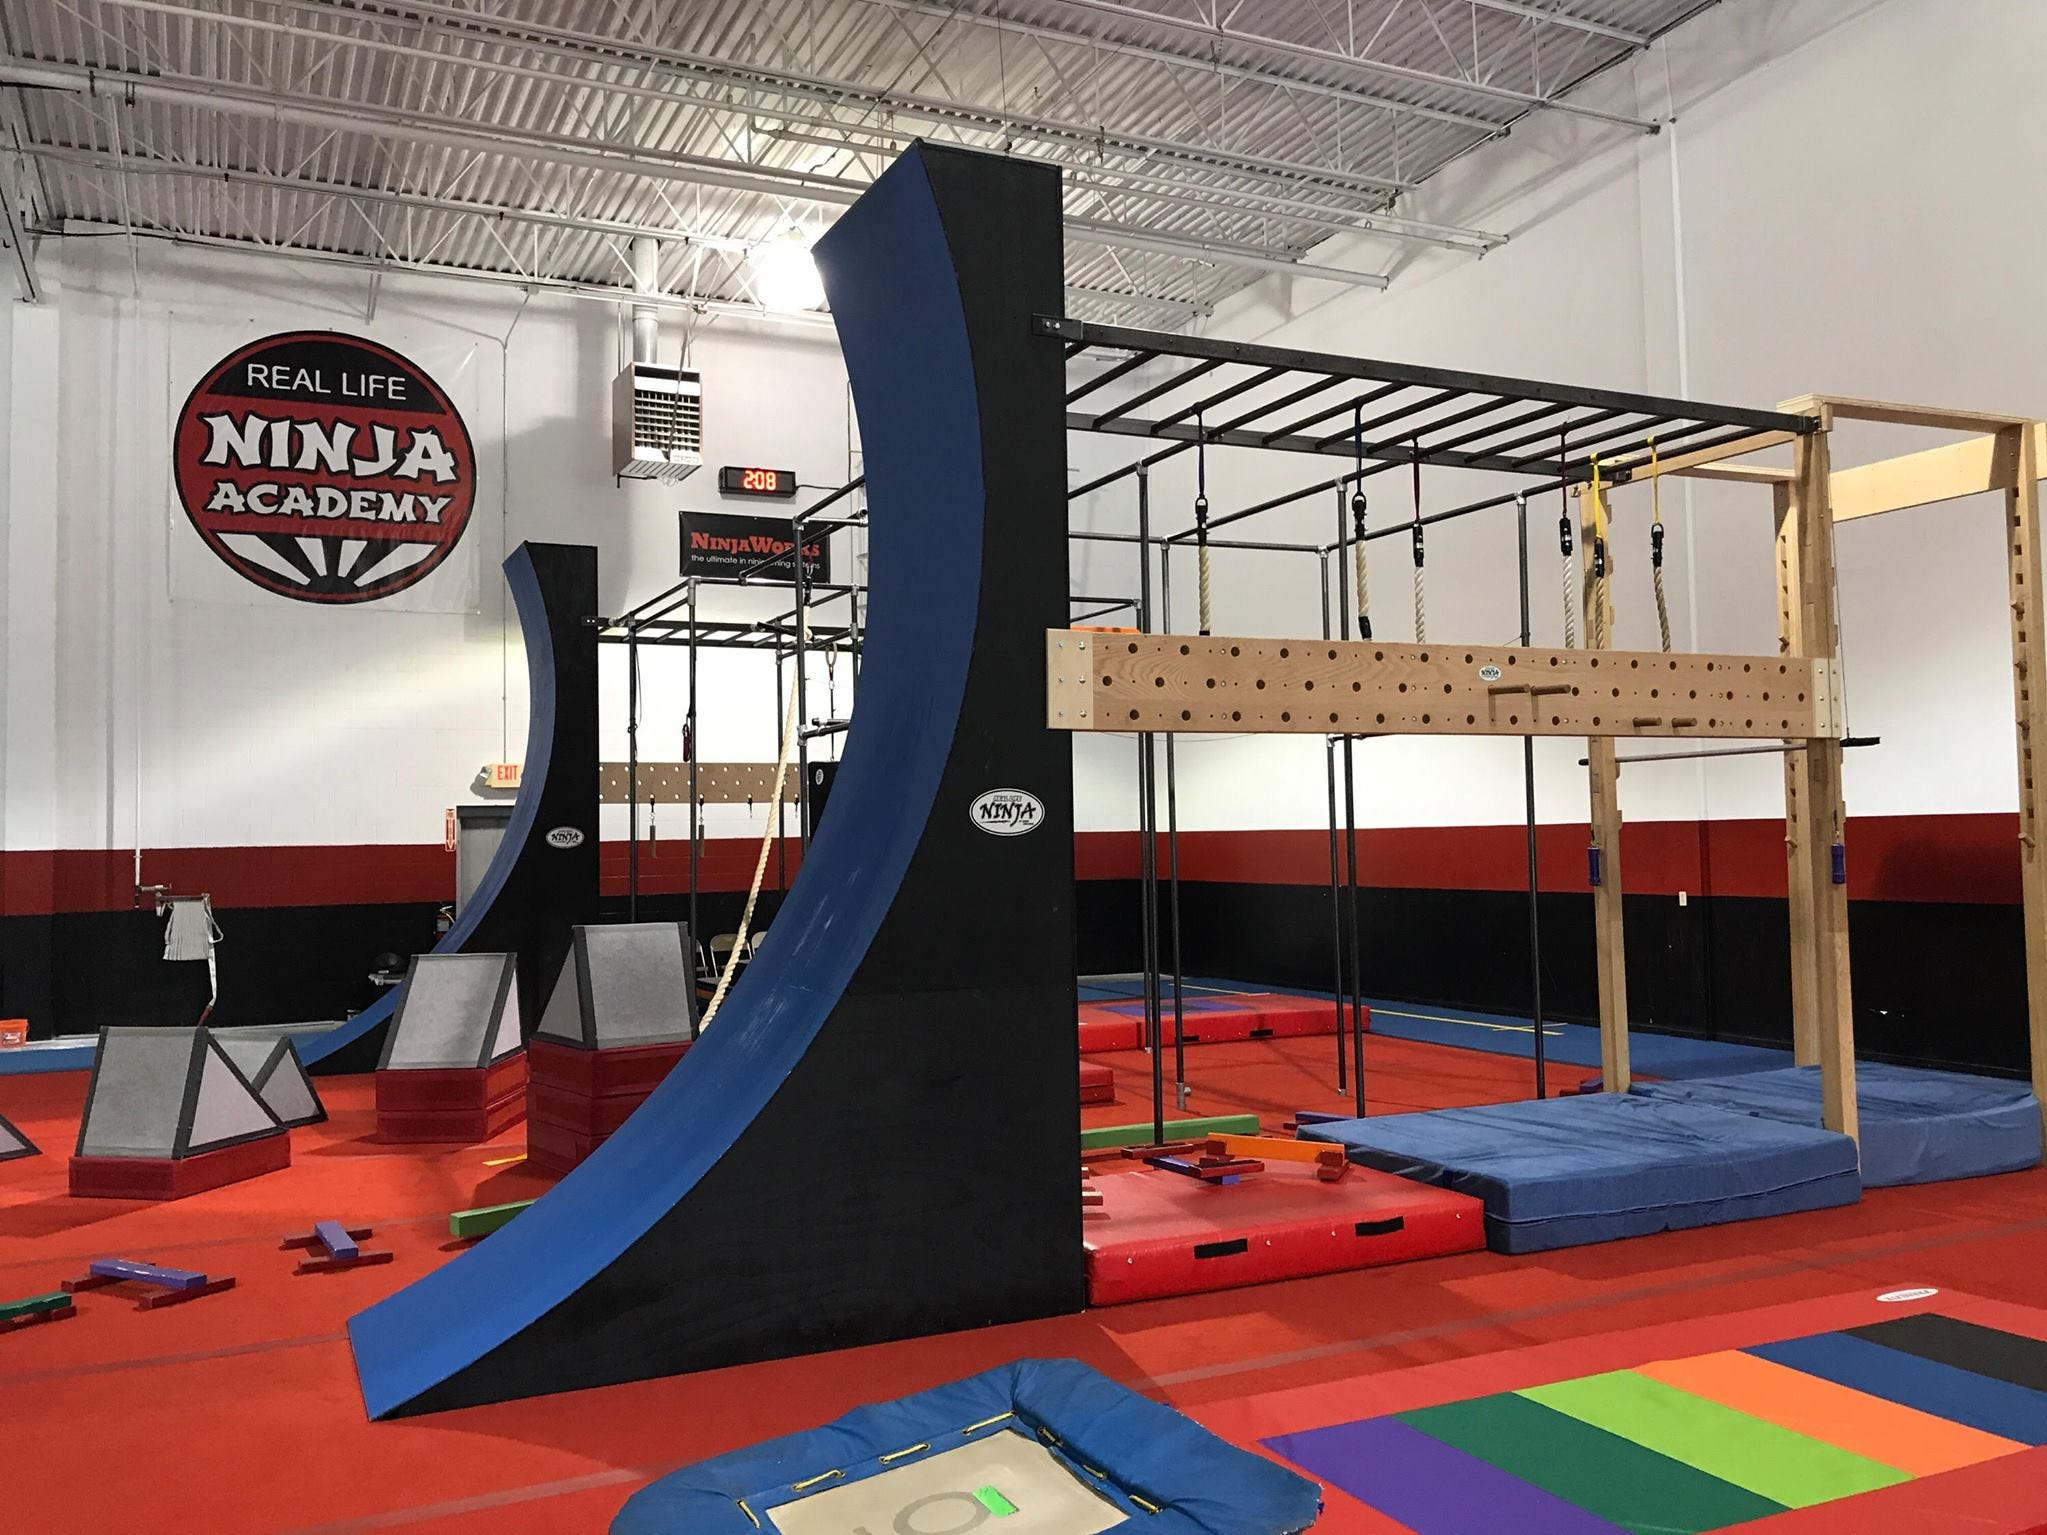 Real Life Ninja Academy in Windsor, Connecticut, features cutting-edge obstacles, which are even available for sale.